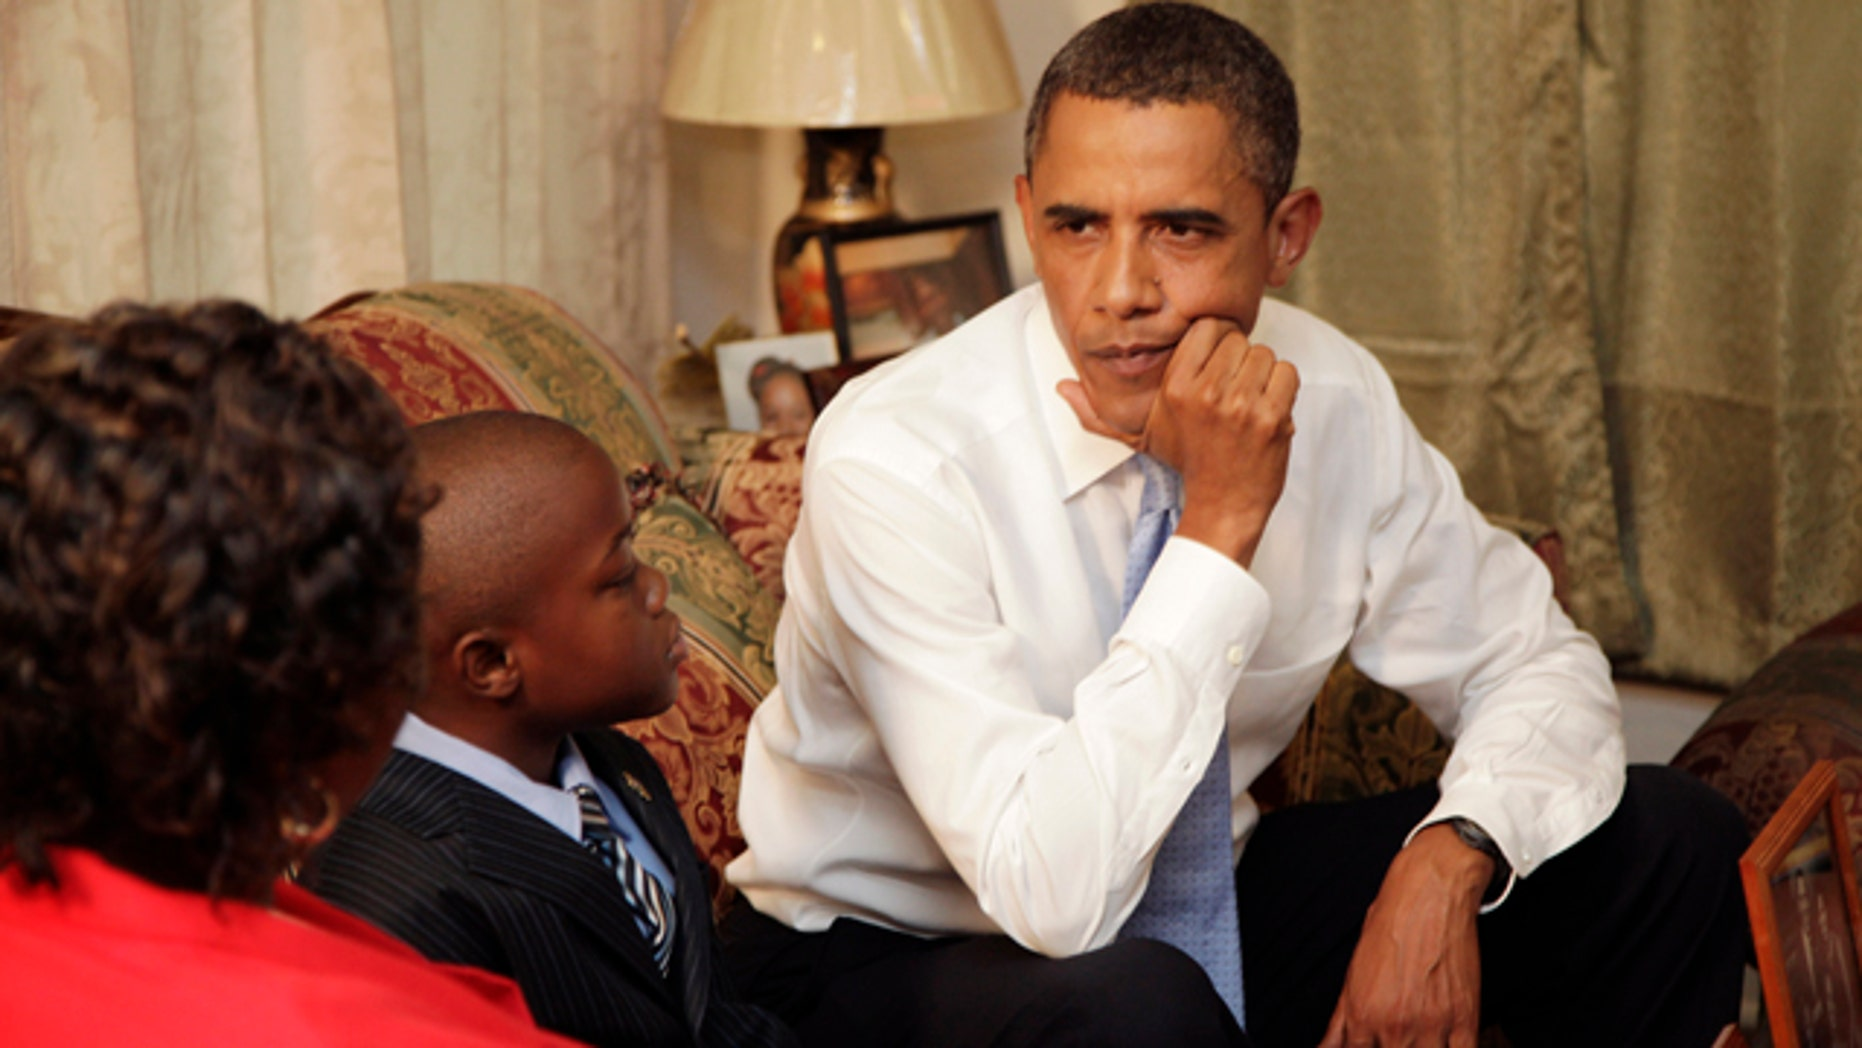 Aug. 29: President Obama talks with resident Maude Smith and her grandson David Robichaux Jr., 9, in her Columbia Parc Development home in New Orleans on the fifth anniversary of Hurricane Katrina.